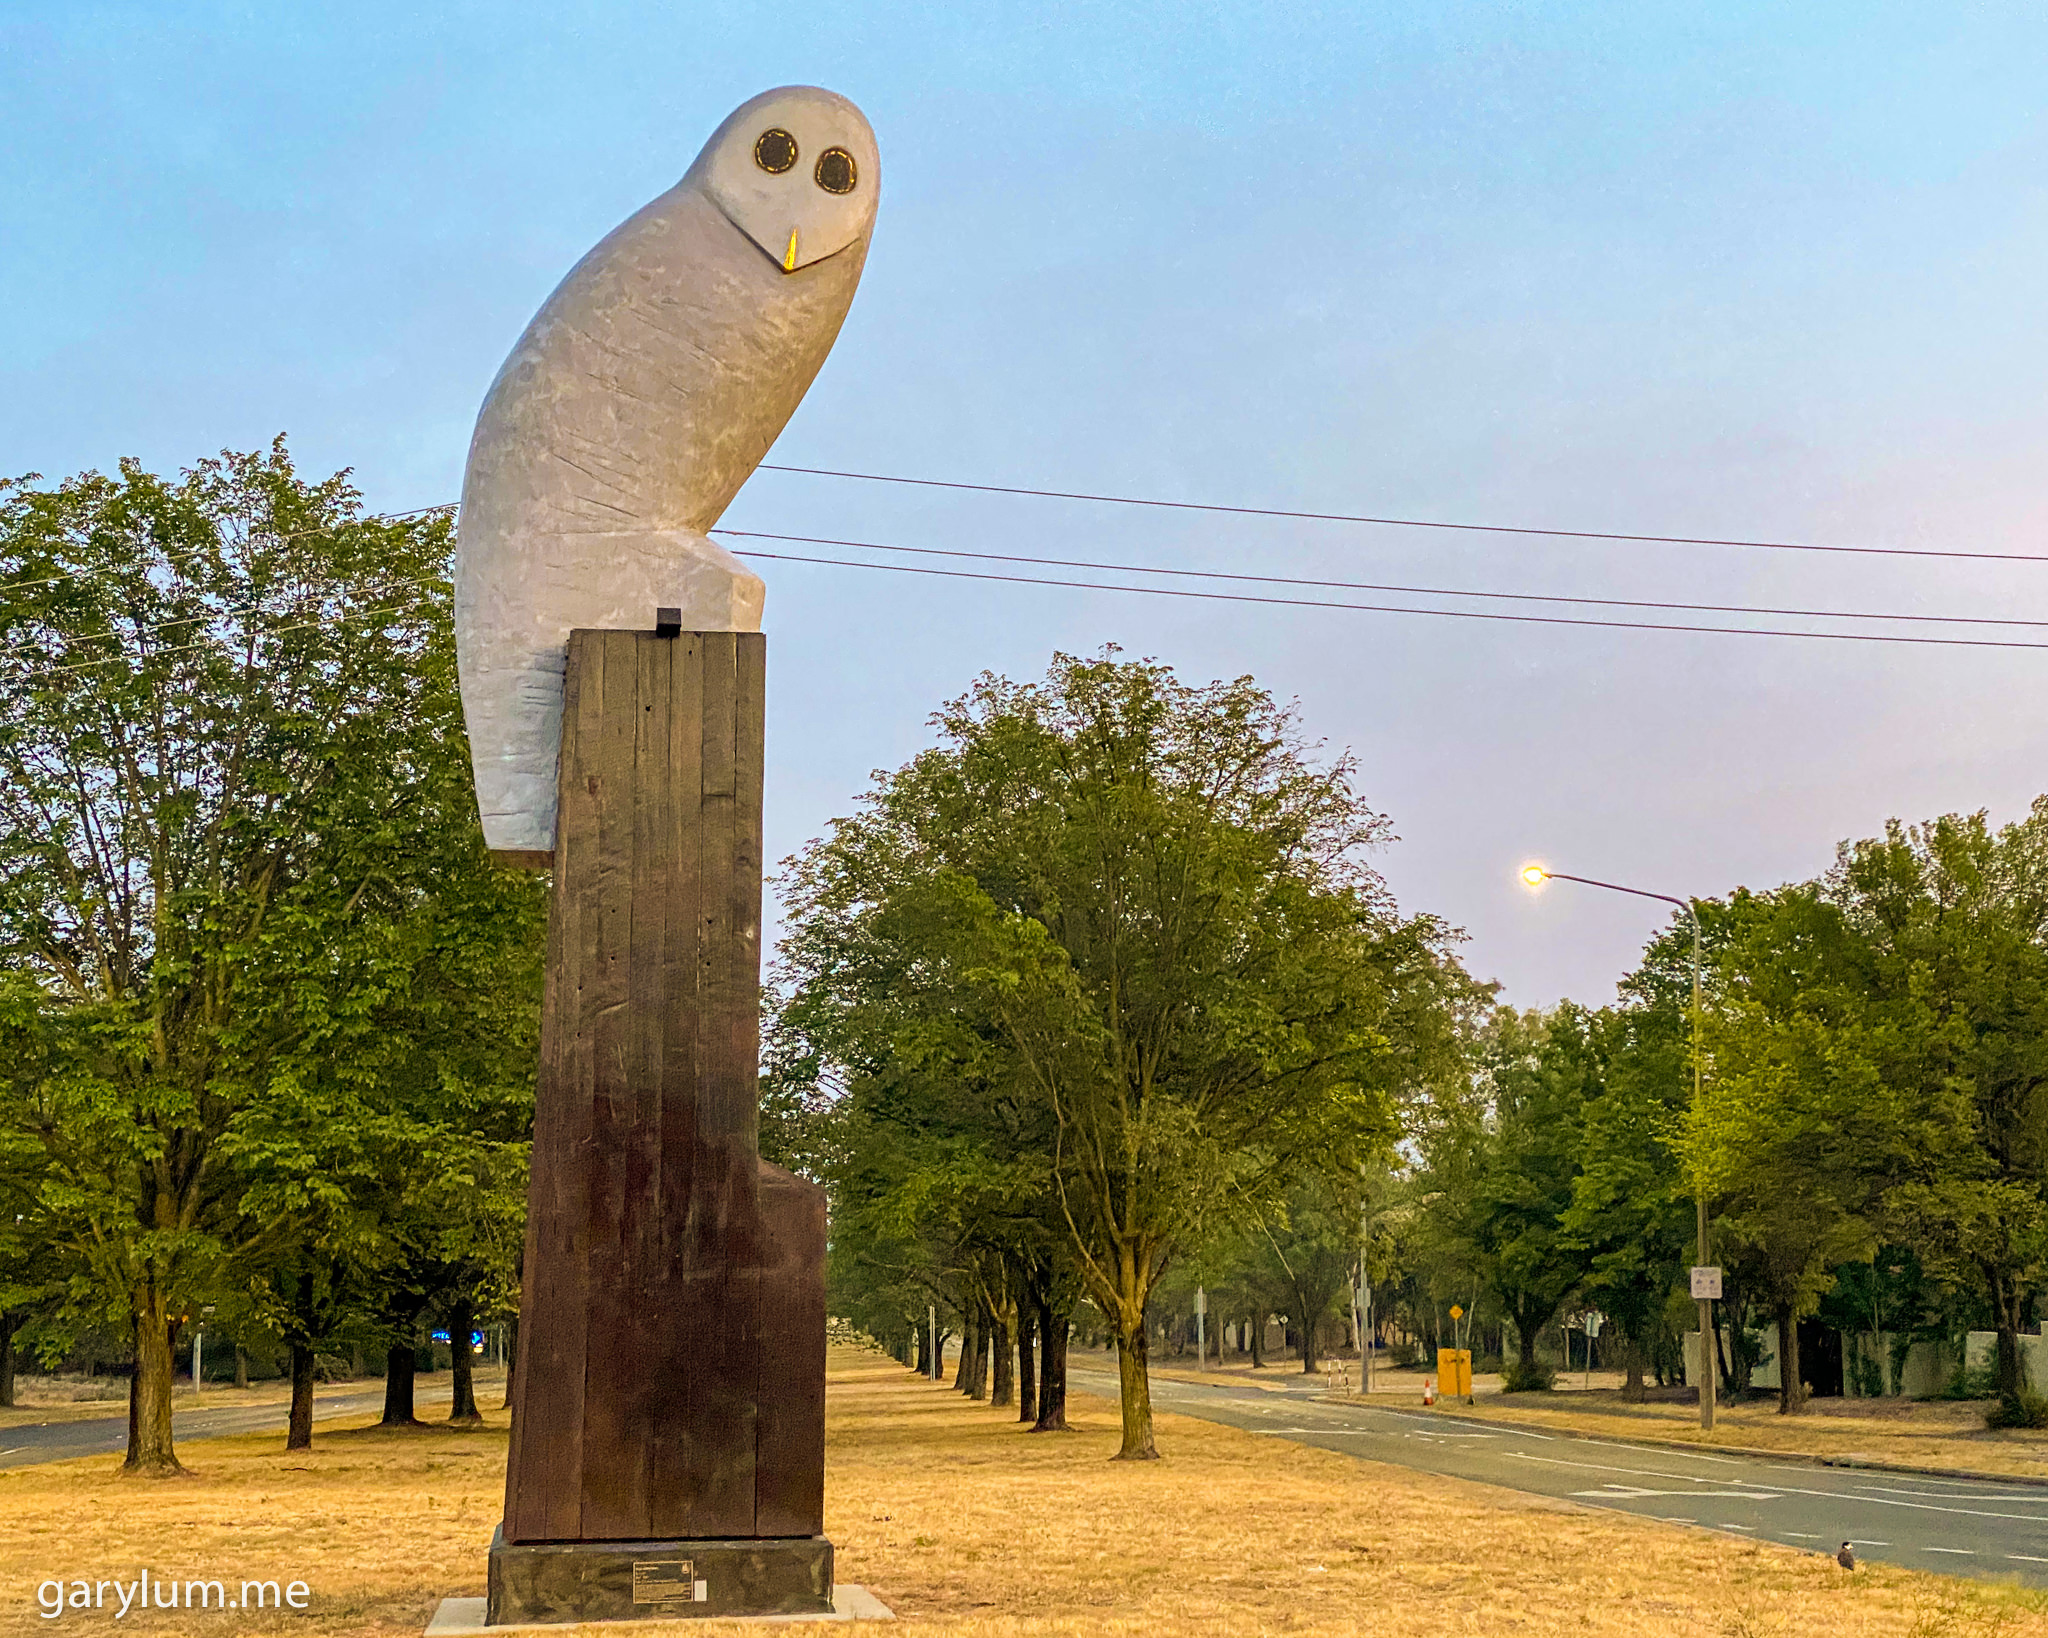 Photograph of The Owl Statue on Saturday morning. Gary Lum.